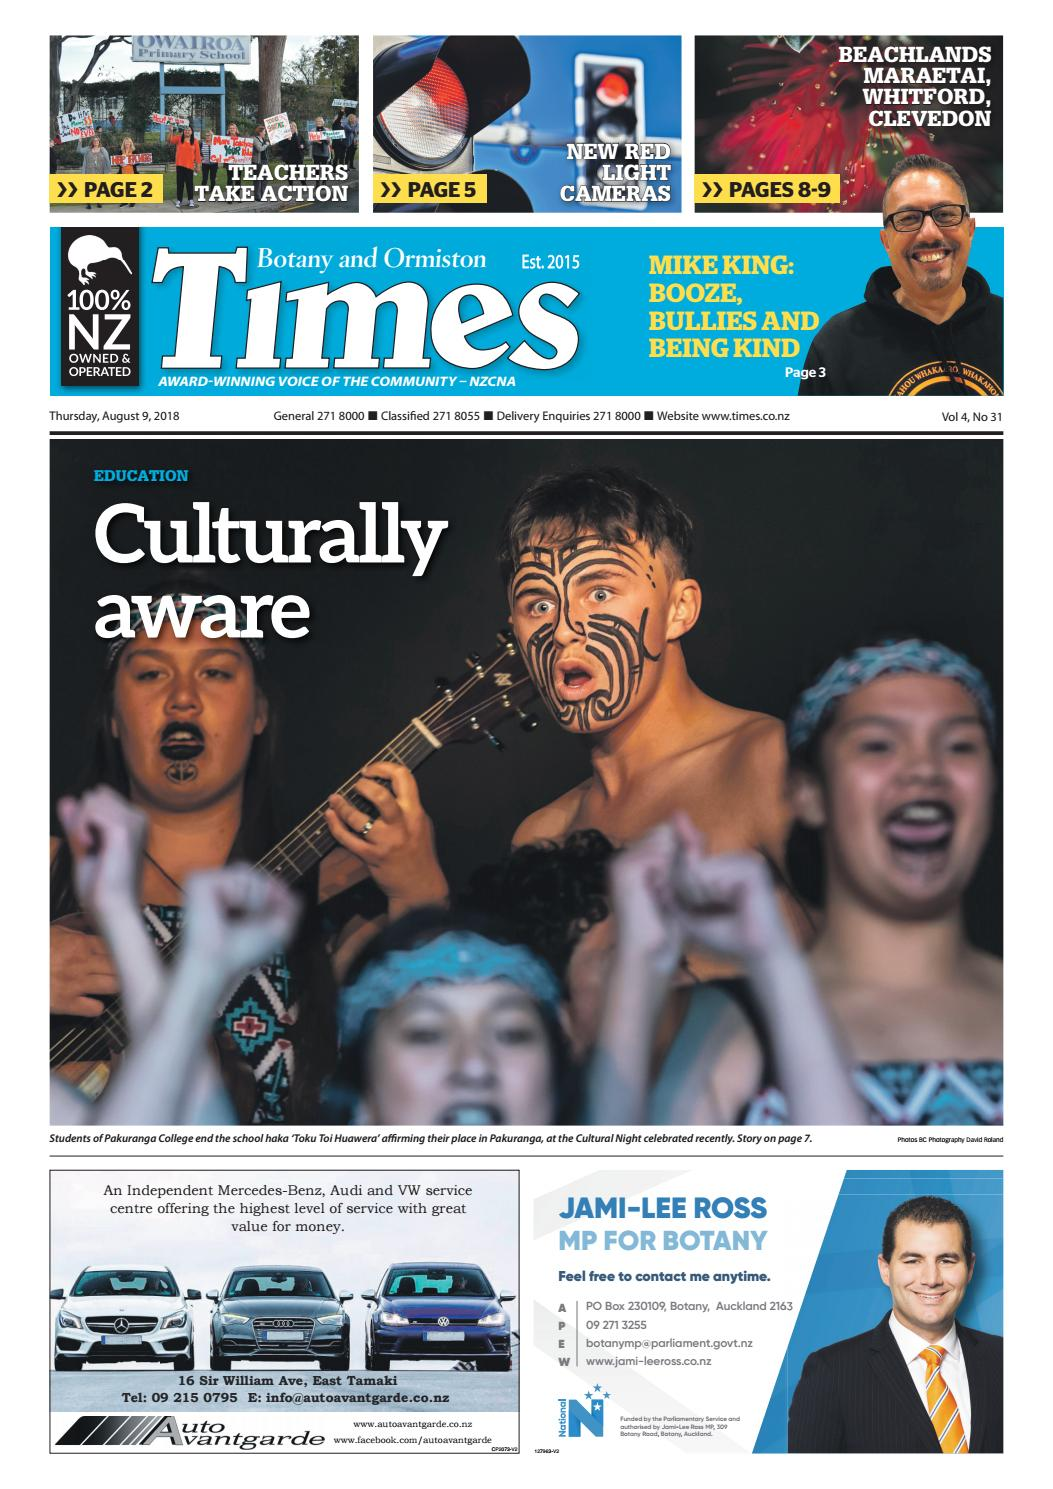 Botany and Ormiston Times, Thursday, August 9, 2018 by Times